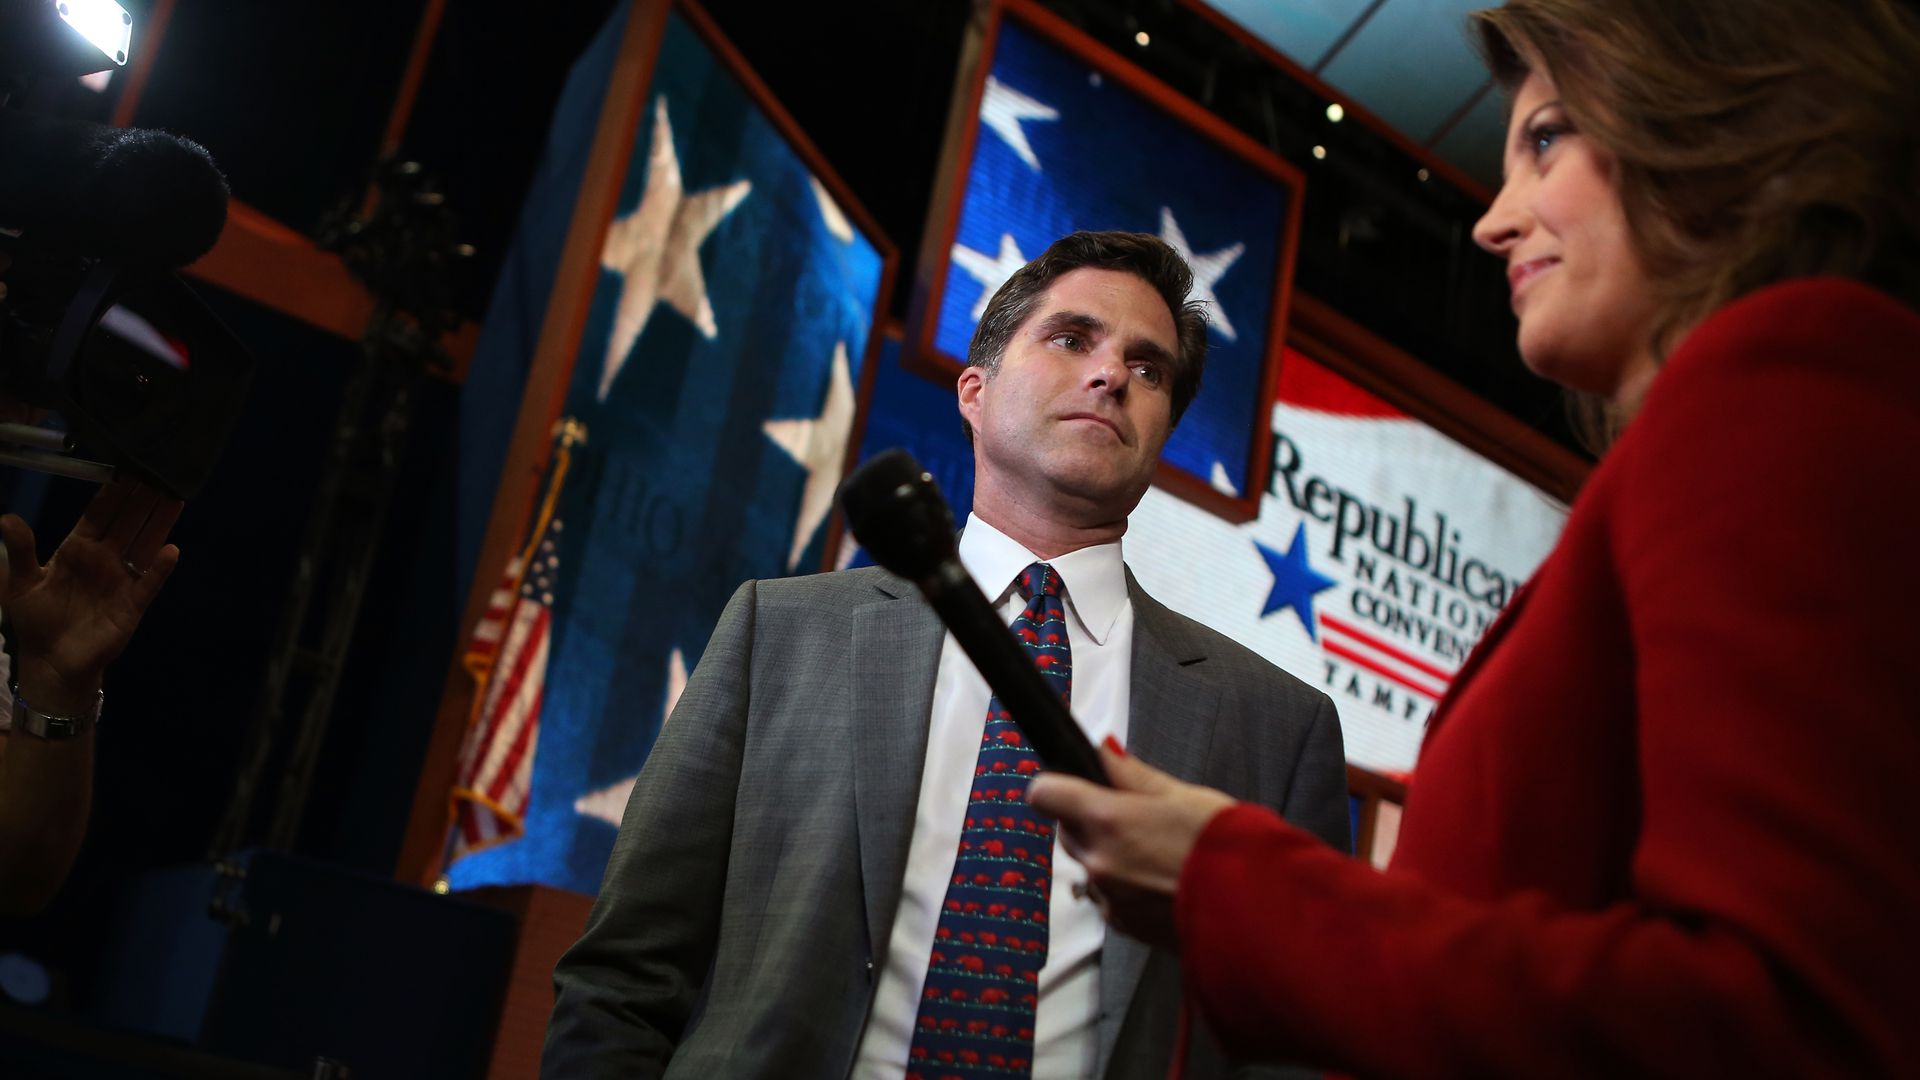 Tagg Romney at the 2012 Republican National Convention.